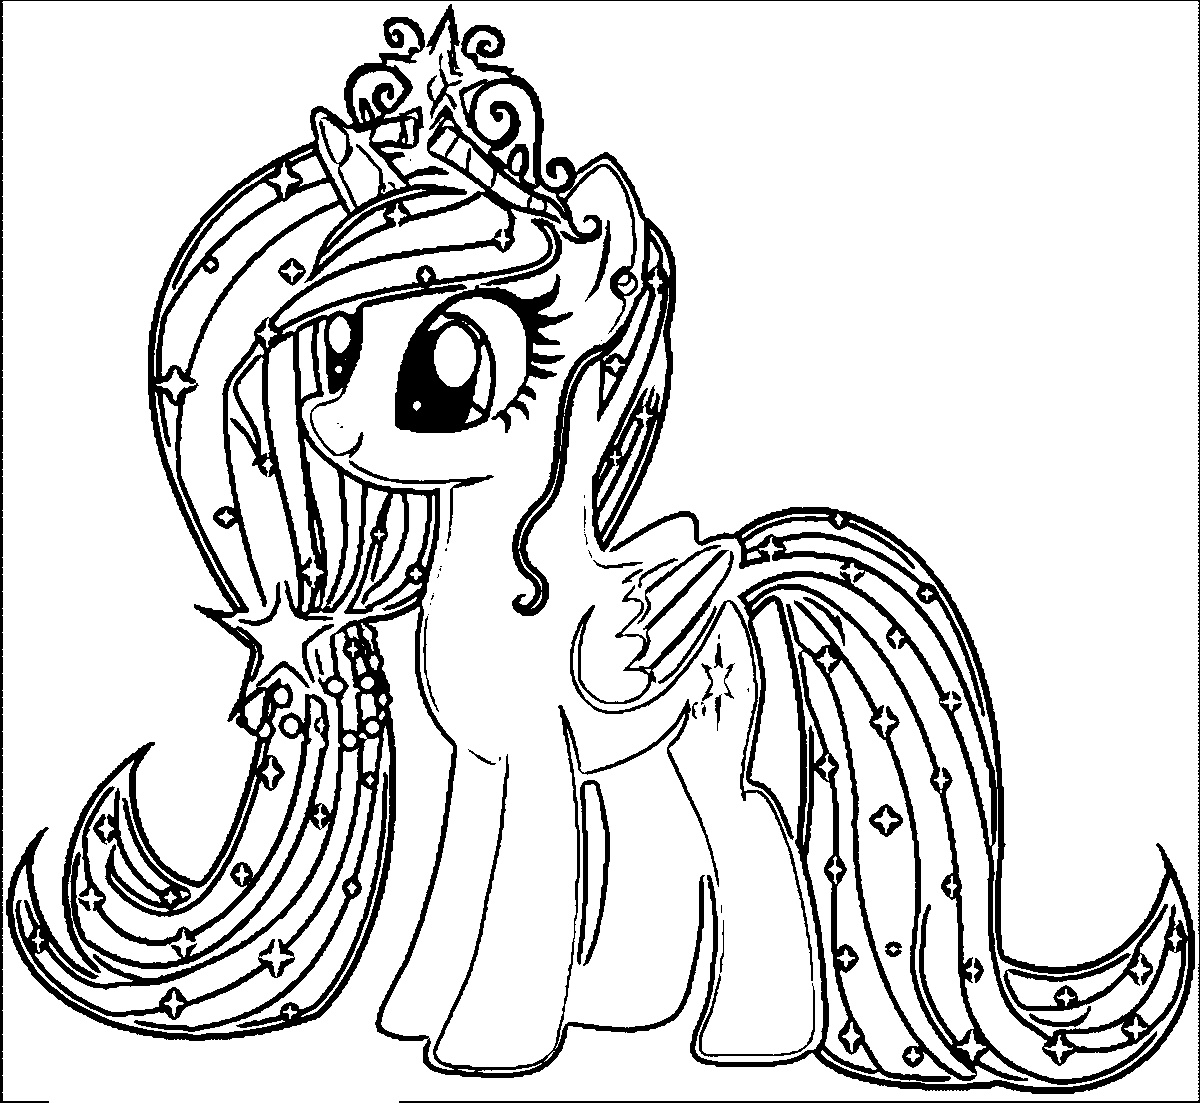 my little pony coloring pages printable fluttershy coloring pages best coloring pages for kids little coloring printable pony my pages